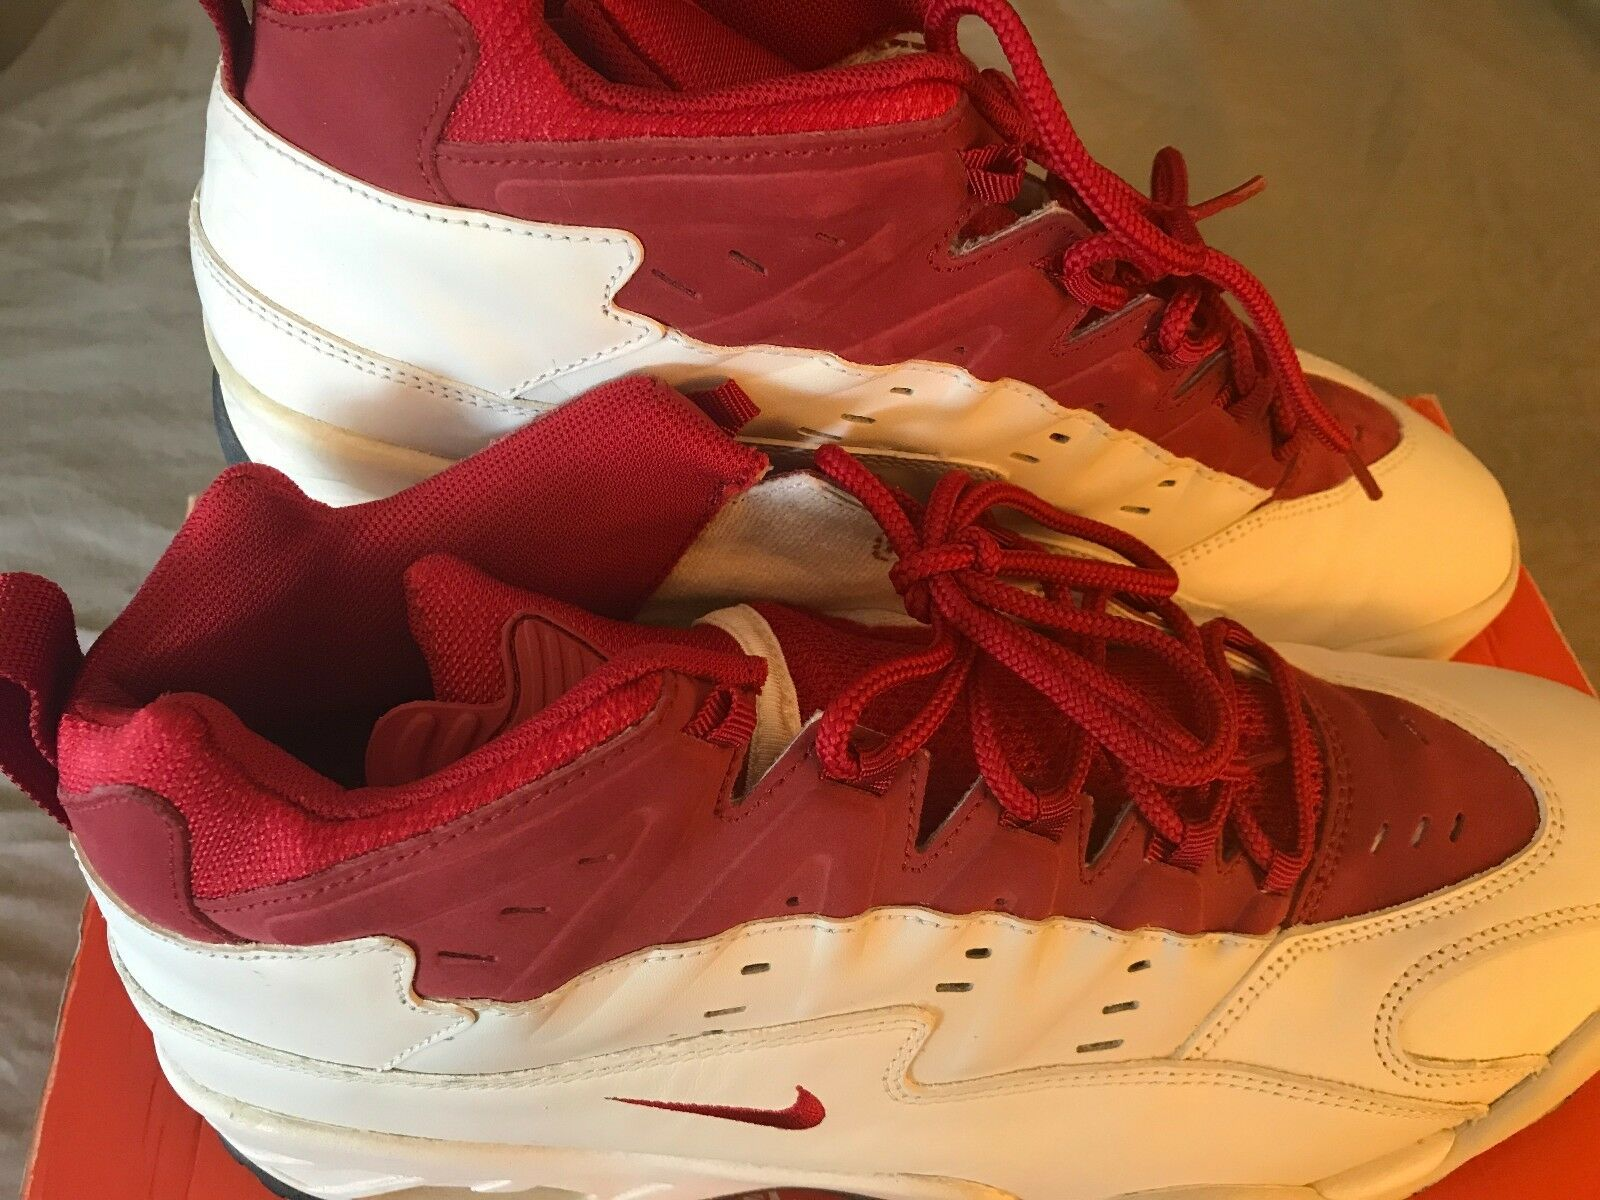 Nike Air Flare Athletic Sneaker Red and White Men's Size 13